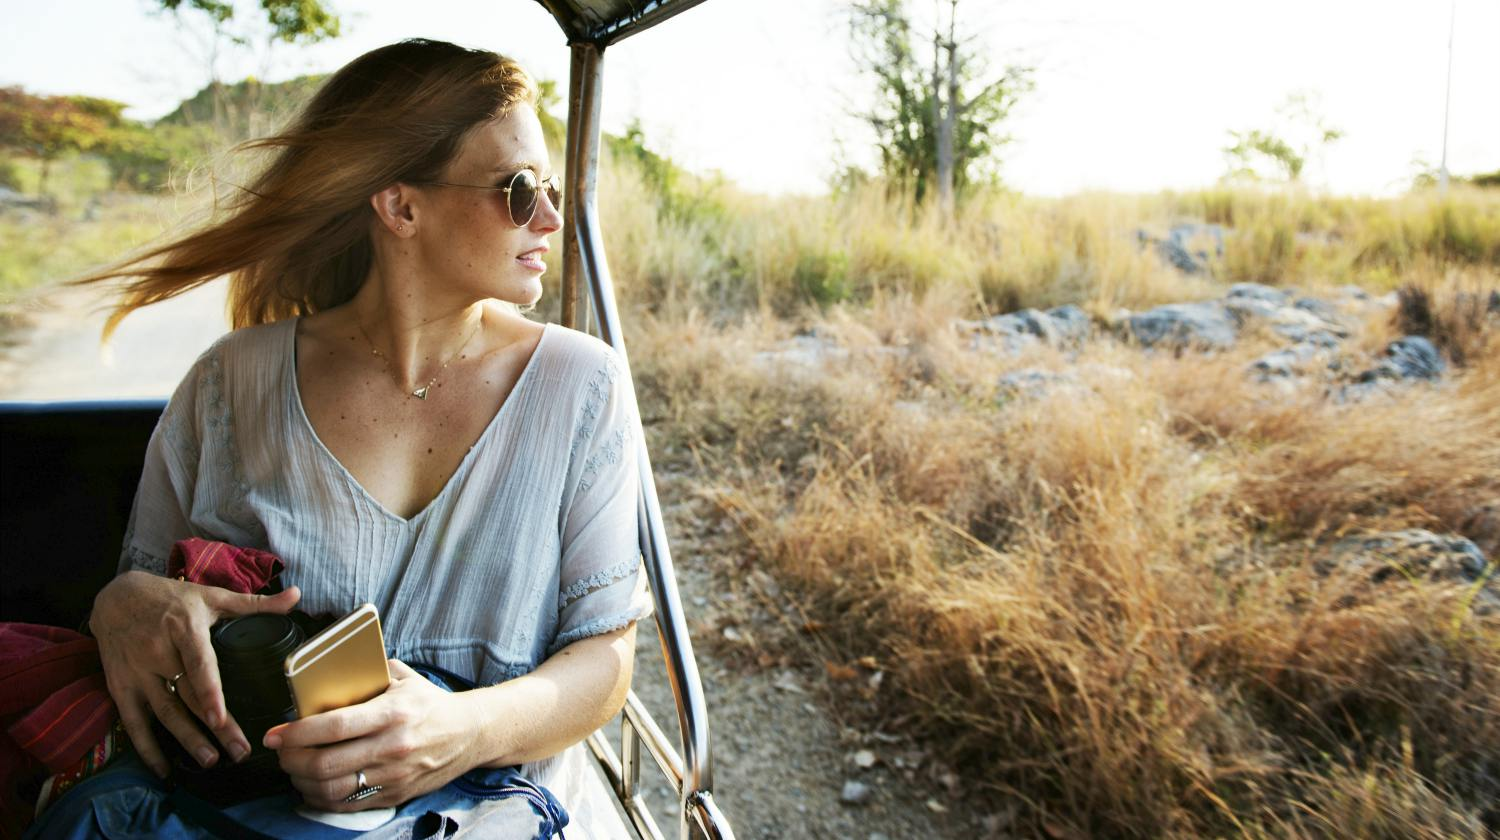 Featured | woman traveling | How To Keep Your Gut Health Happy While Traveling | best probiotics for travel | gut healthy while traveling